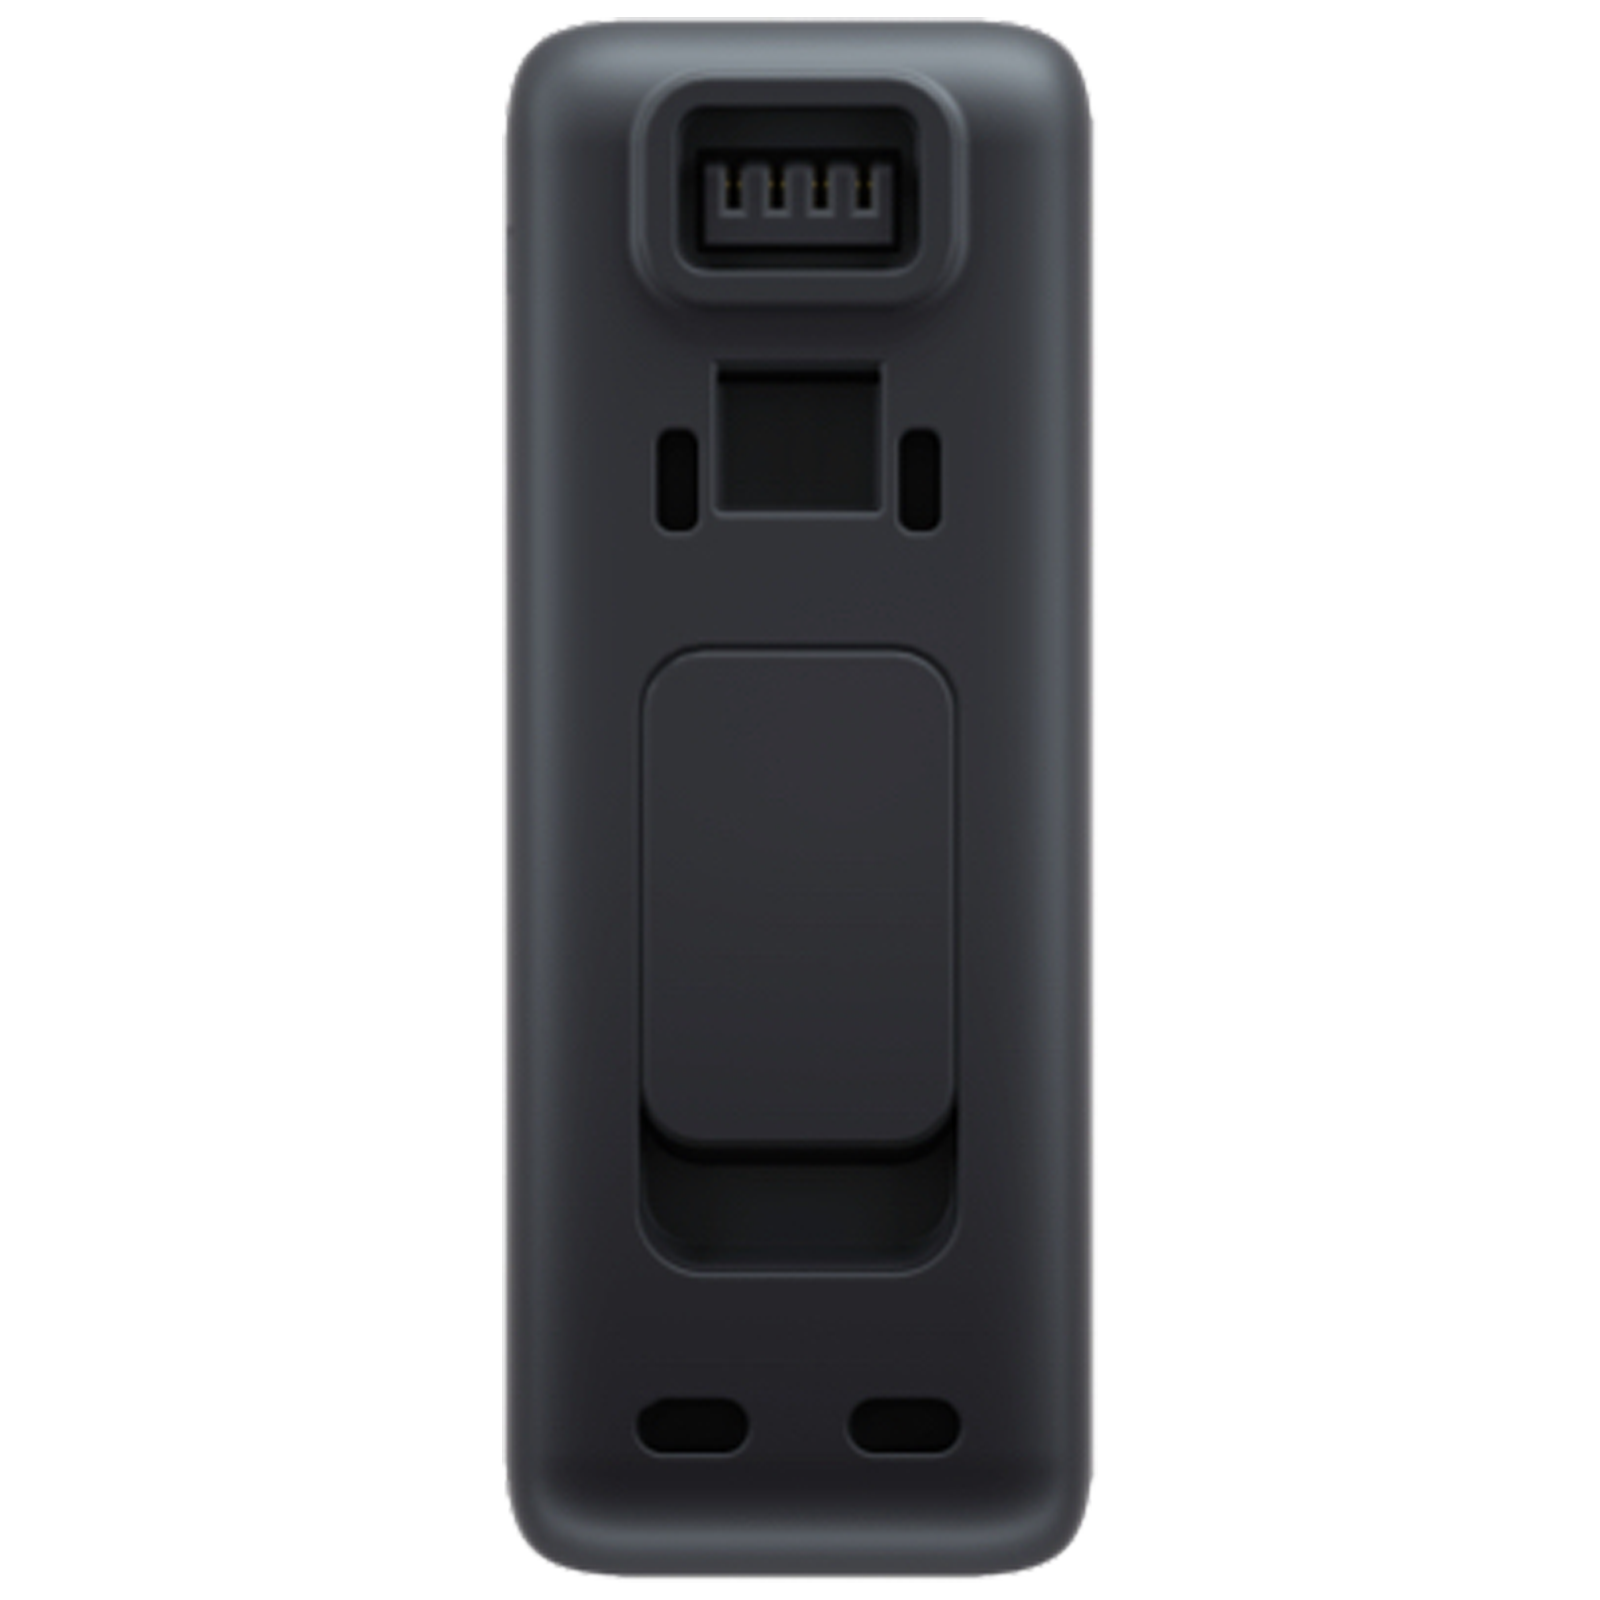 Insta360 Charging Hub For One R (Fast Charging Capability, IN.00000001.04, Black)_1